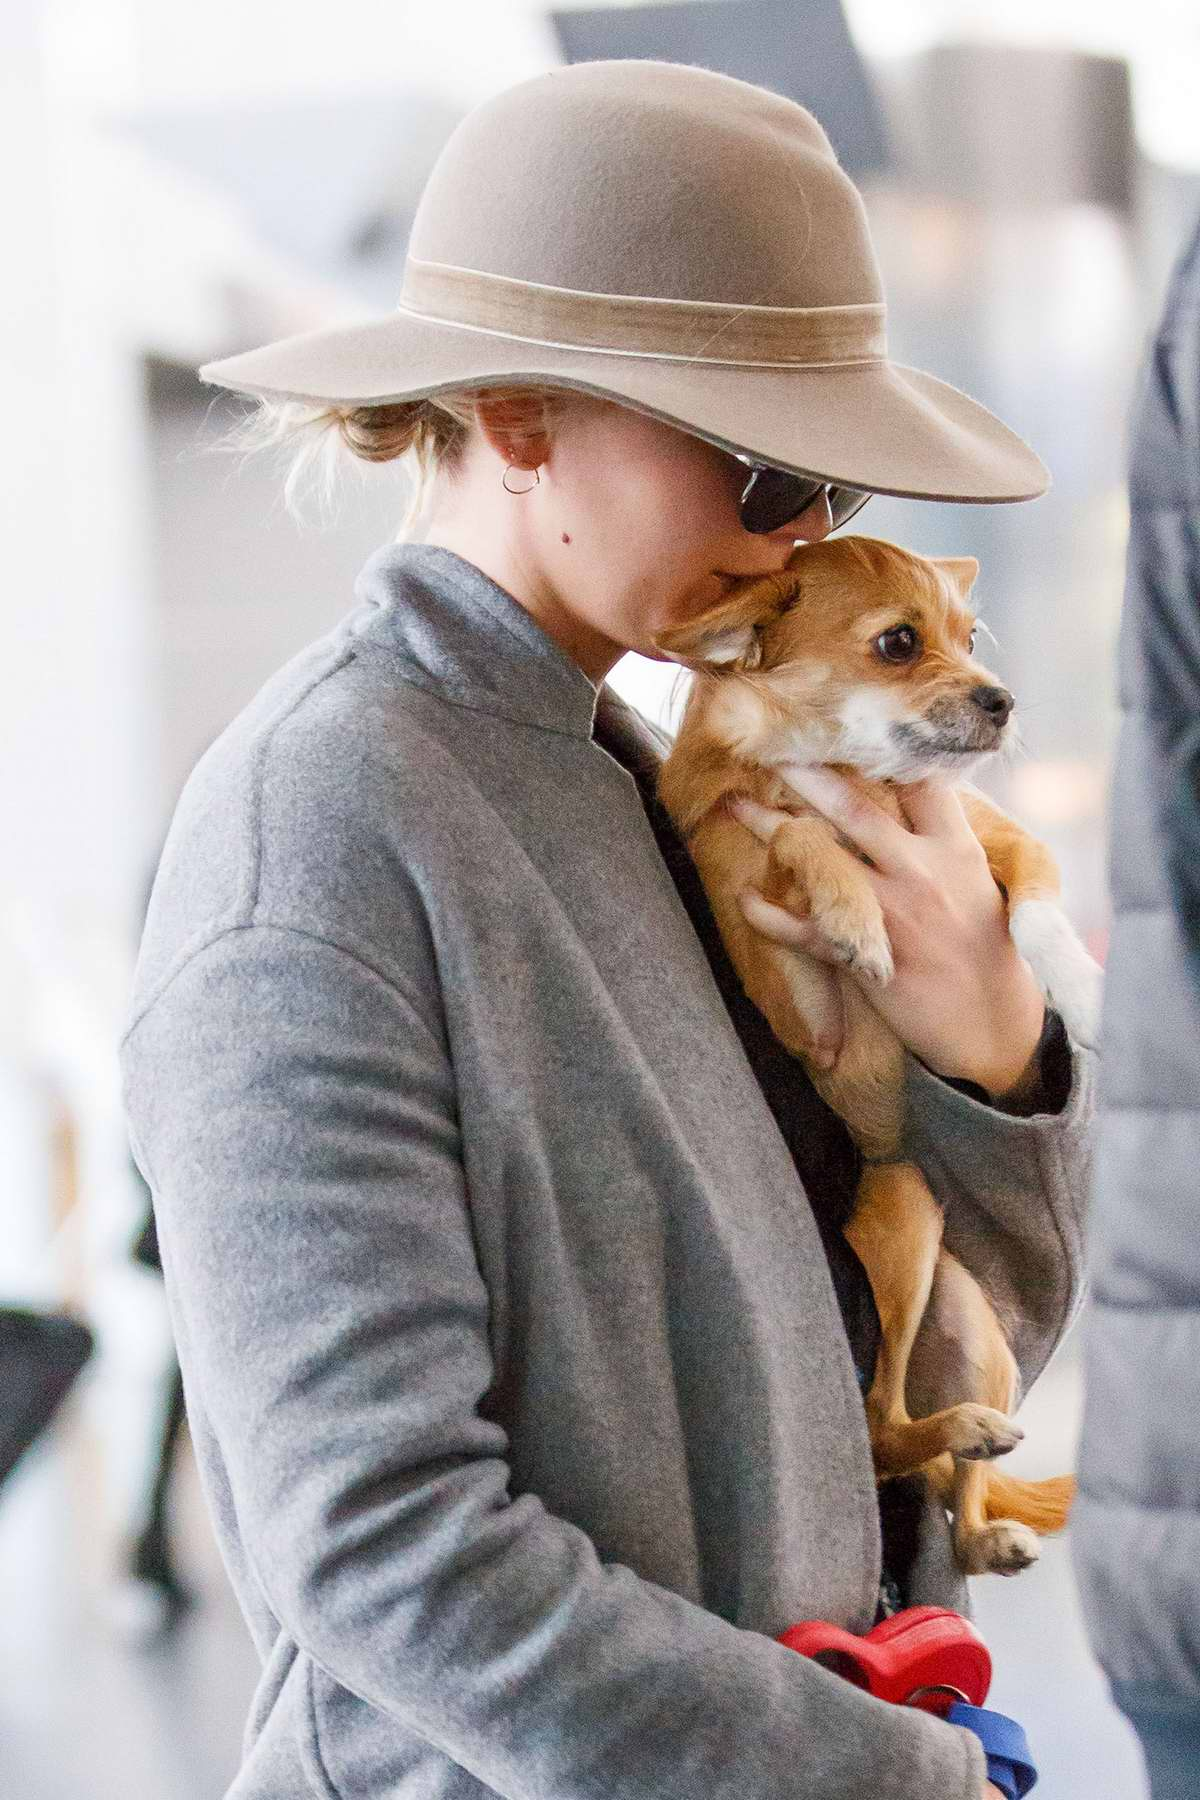 Jennifer Lawrence arrives at the JFK airport with her dog in New York